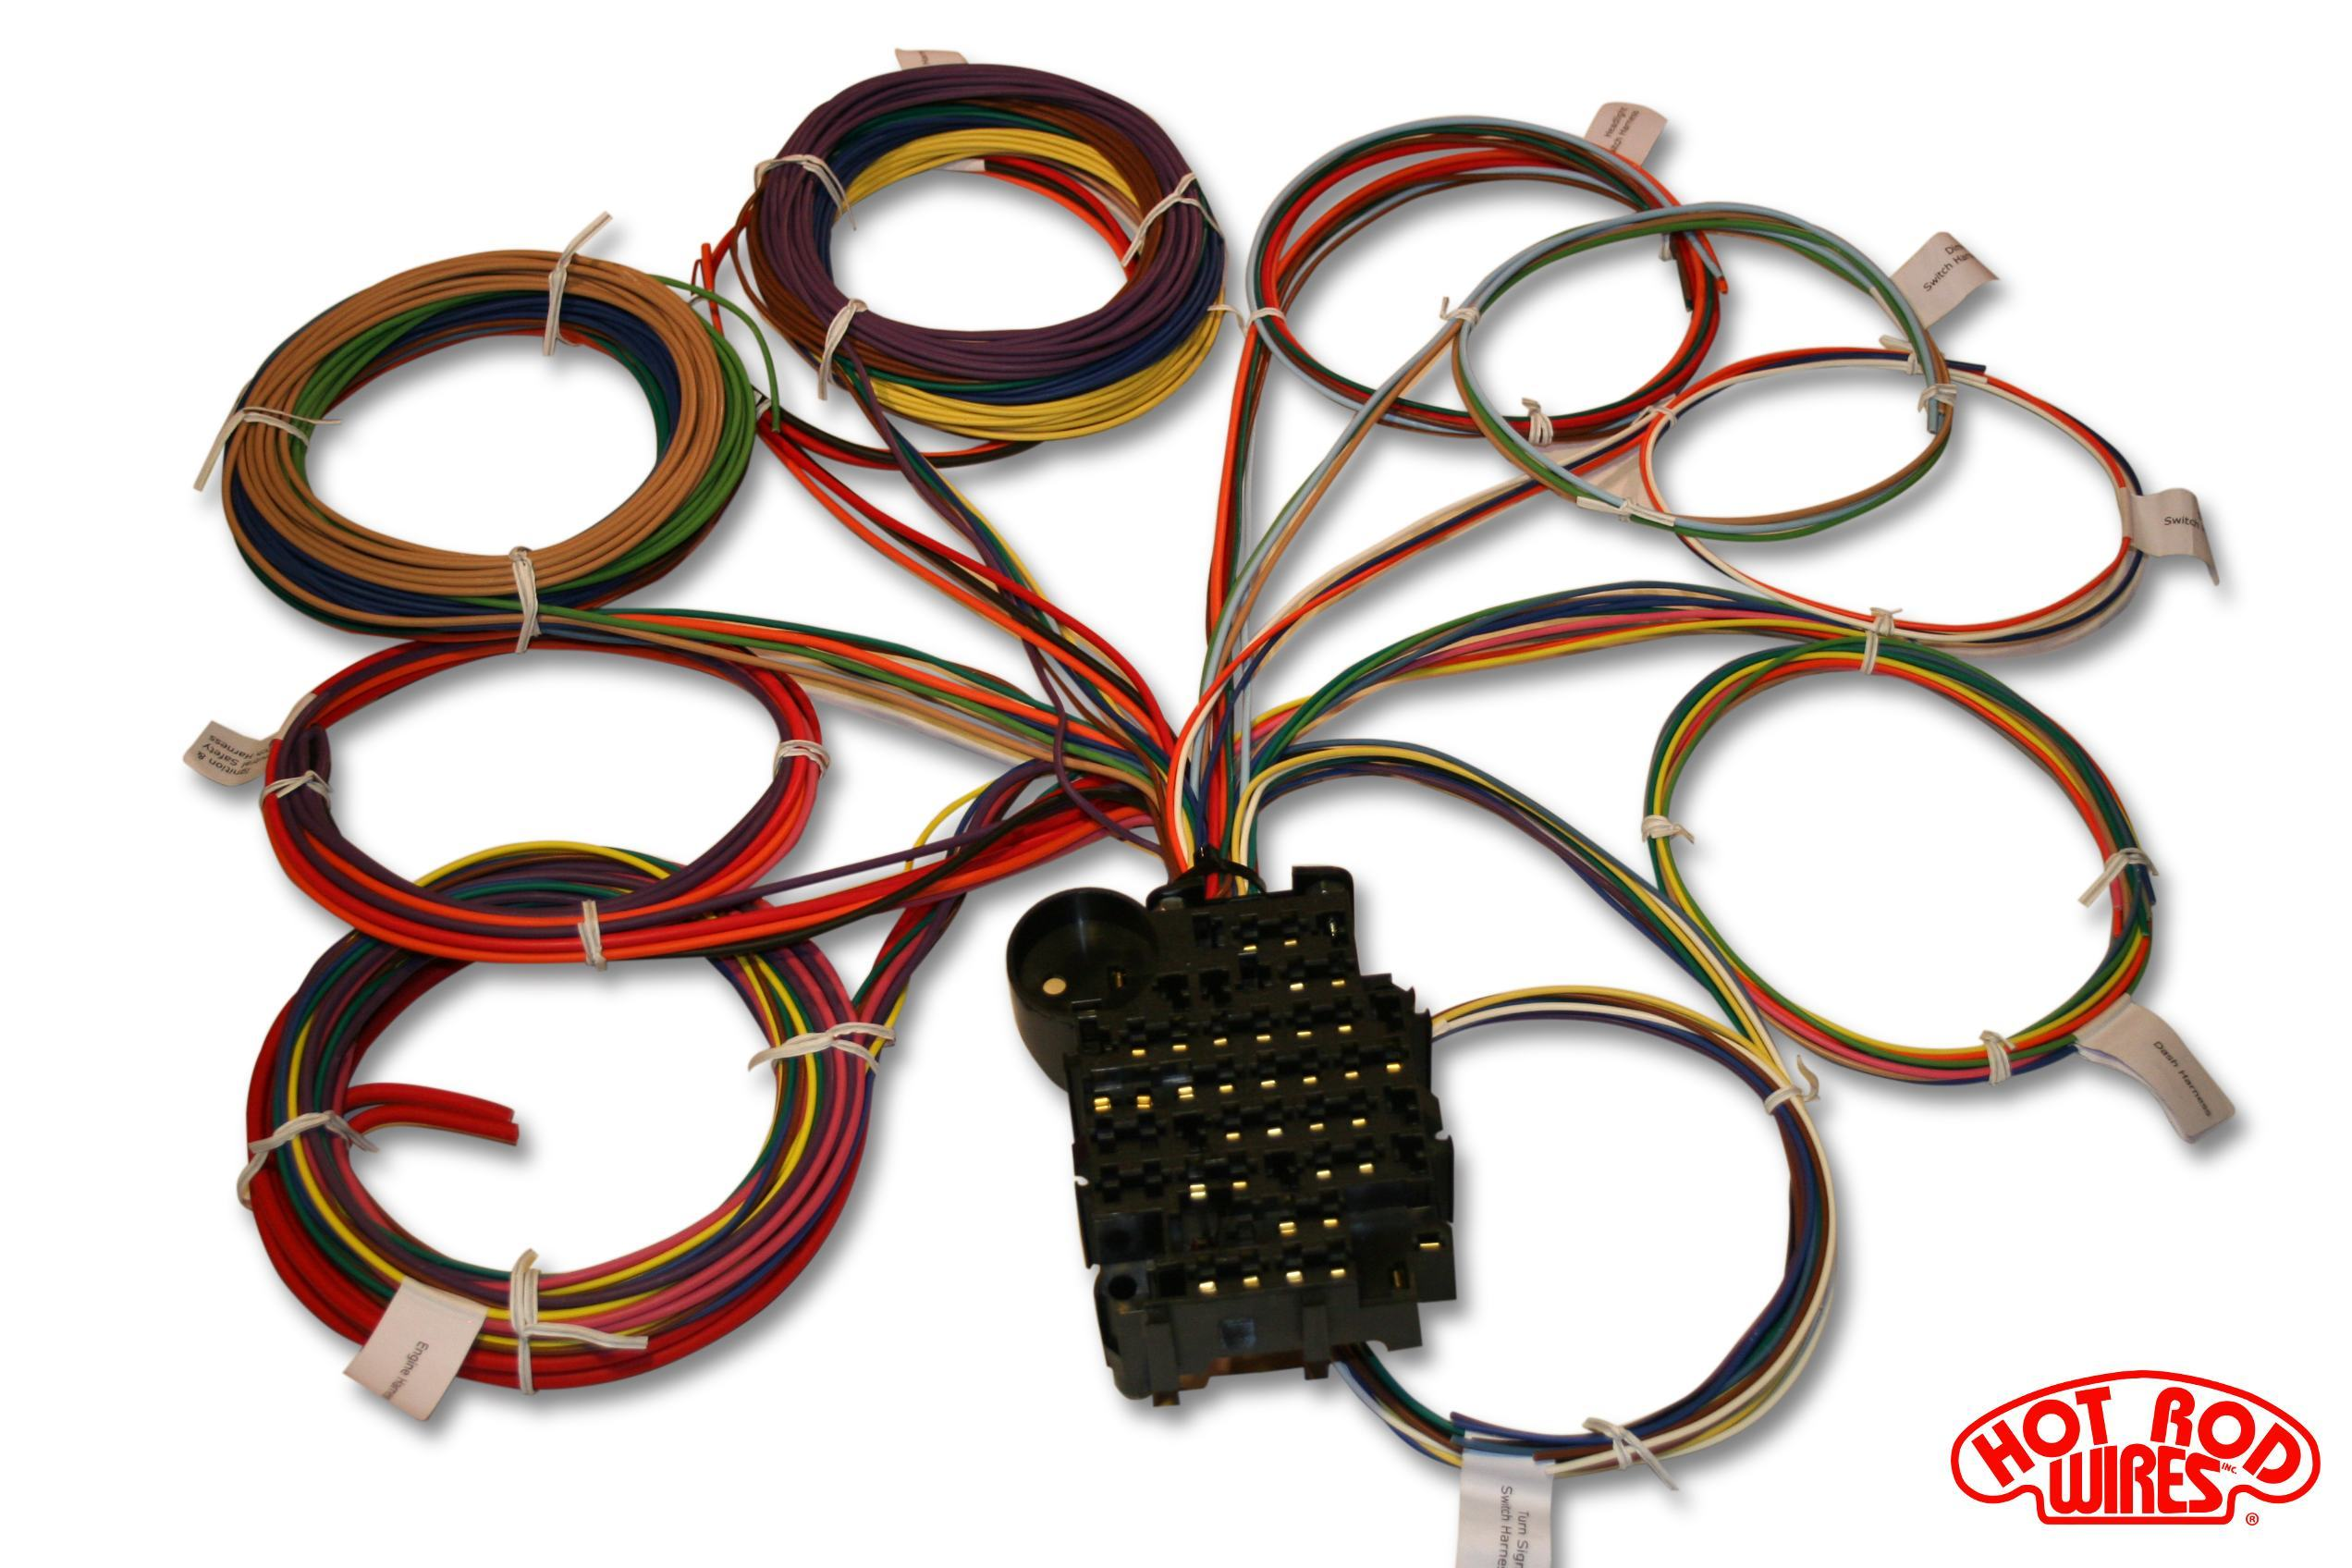 18 circuit harness overhead universal 18 circuit auto wiring harness hotrodwires com hot rod wiring harness universal at panicattacktreatment.co